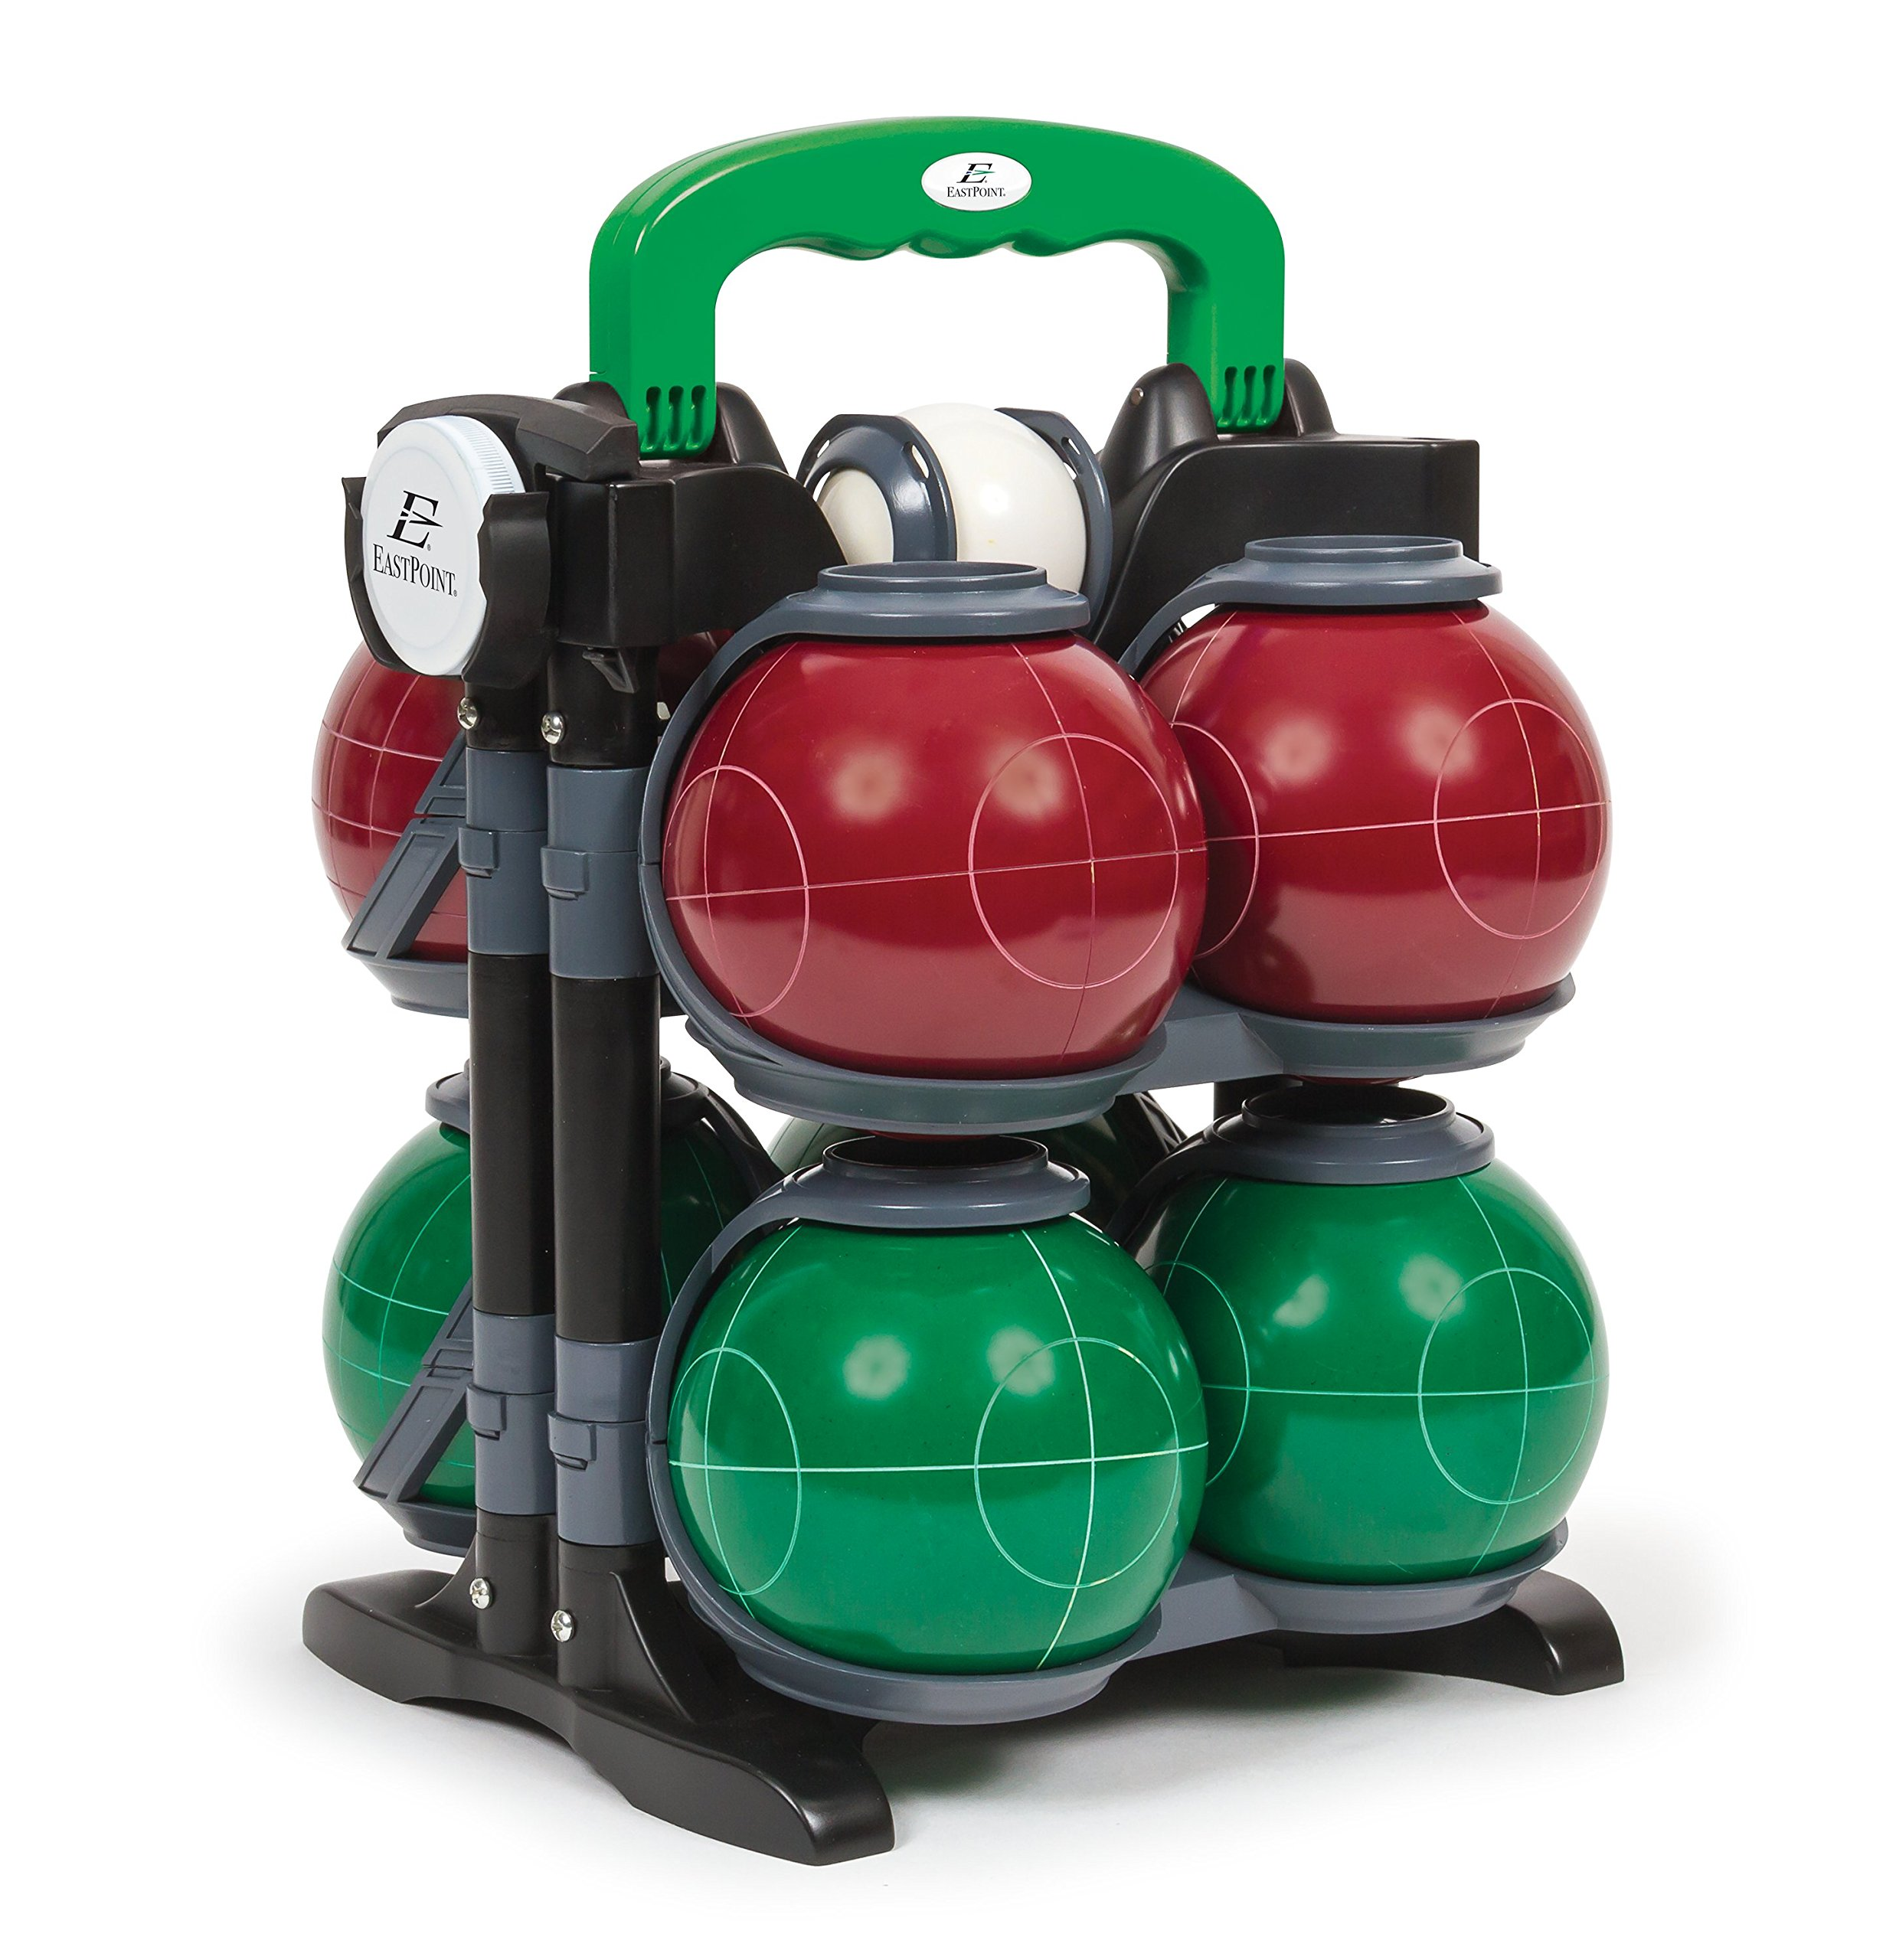 EastPoint Sports Tournament 110MM Resin Bocce Lawn Game with Carrier